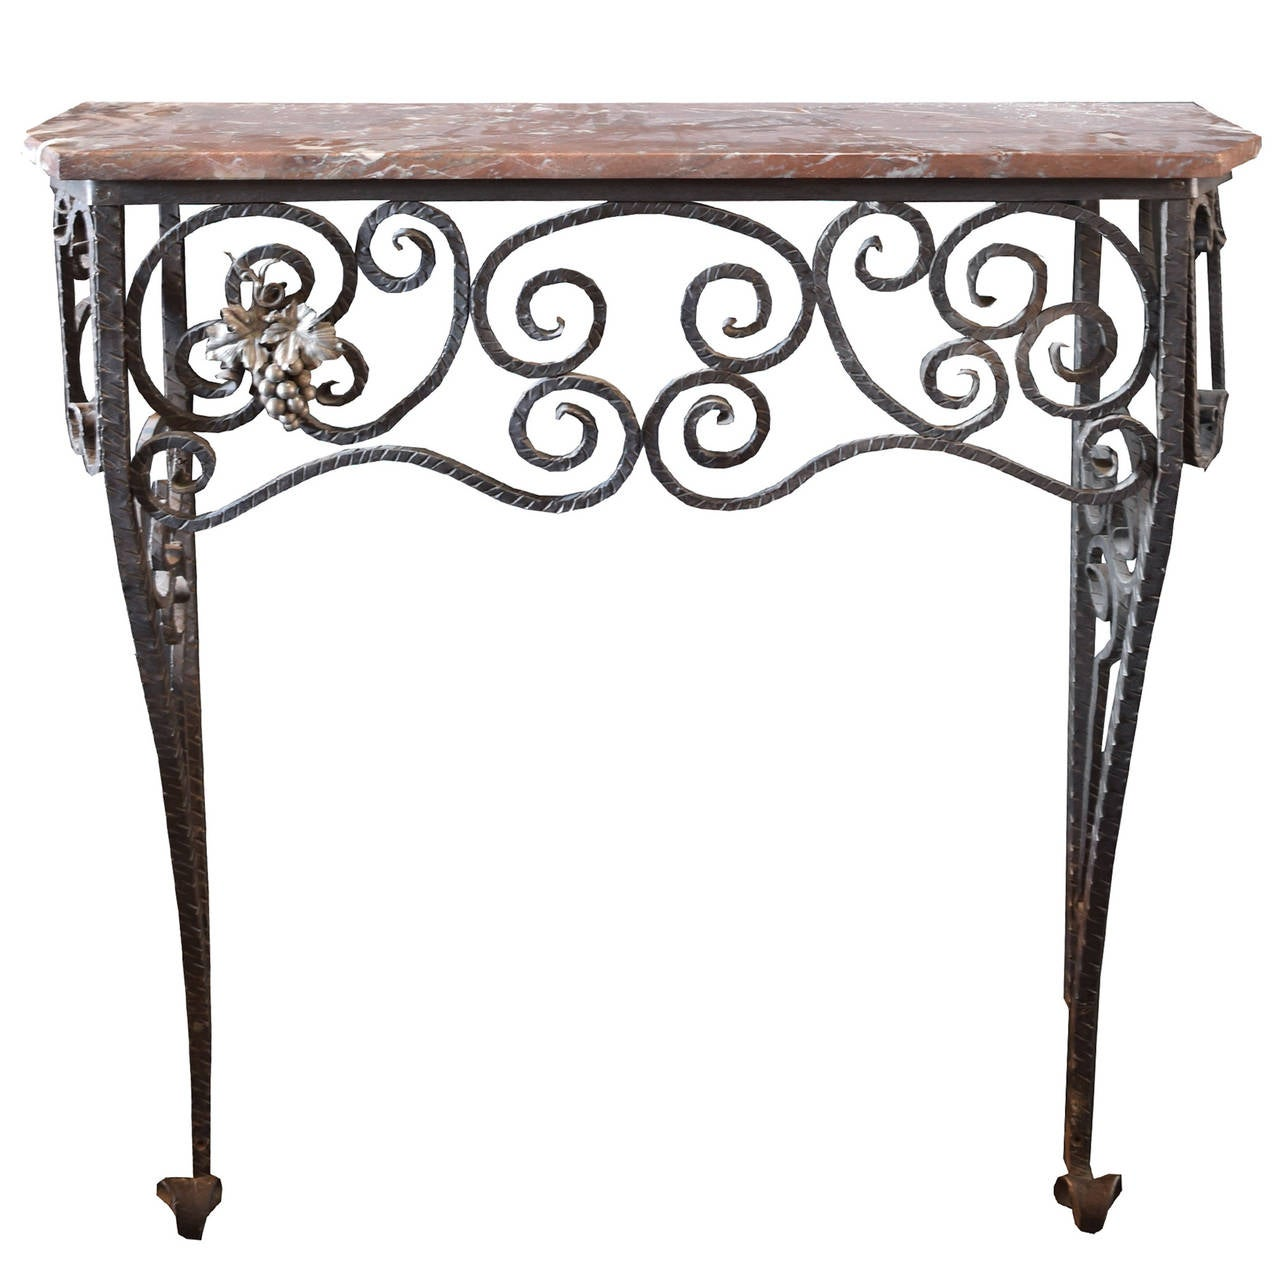 Fer forge console table with marble top for sale at 1stdibs for Decor mural exterieur fer forge